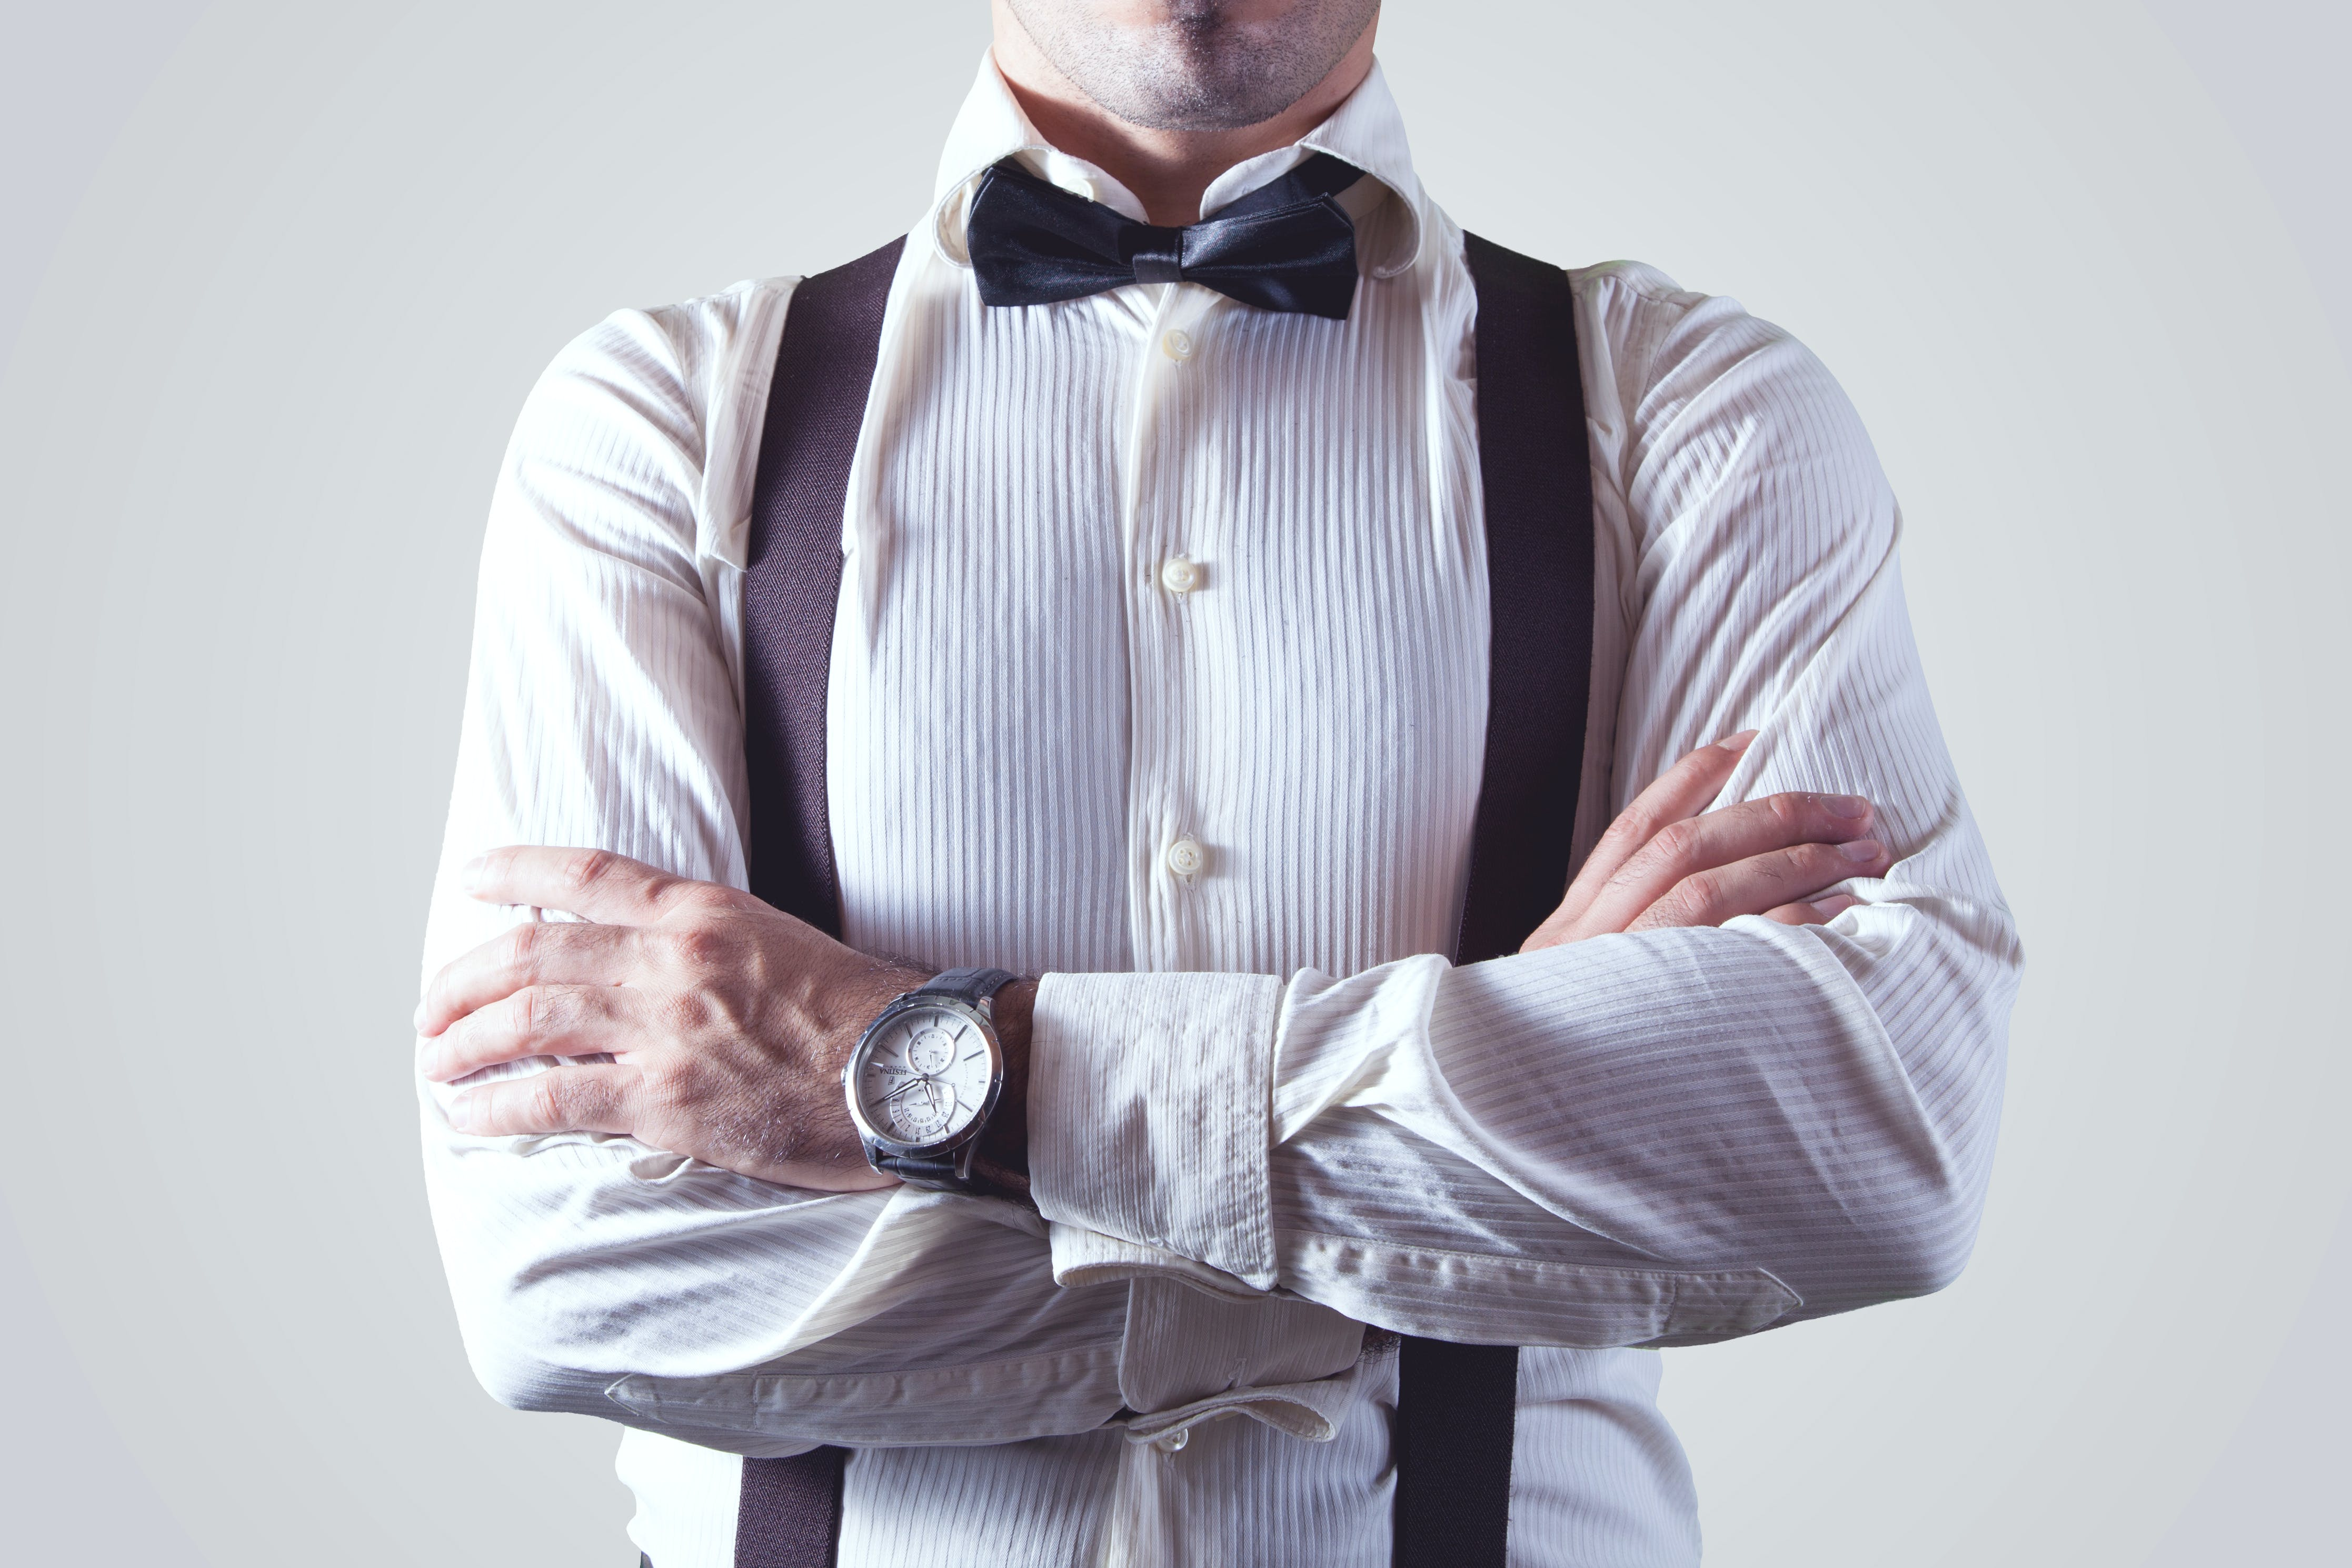 7 Characteristics for Managers to Avoid